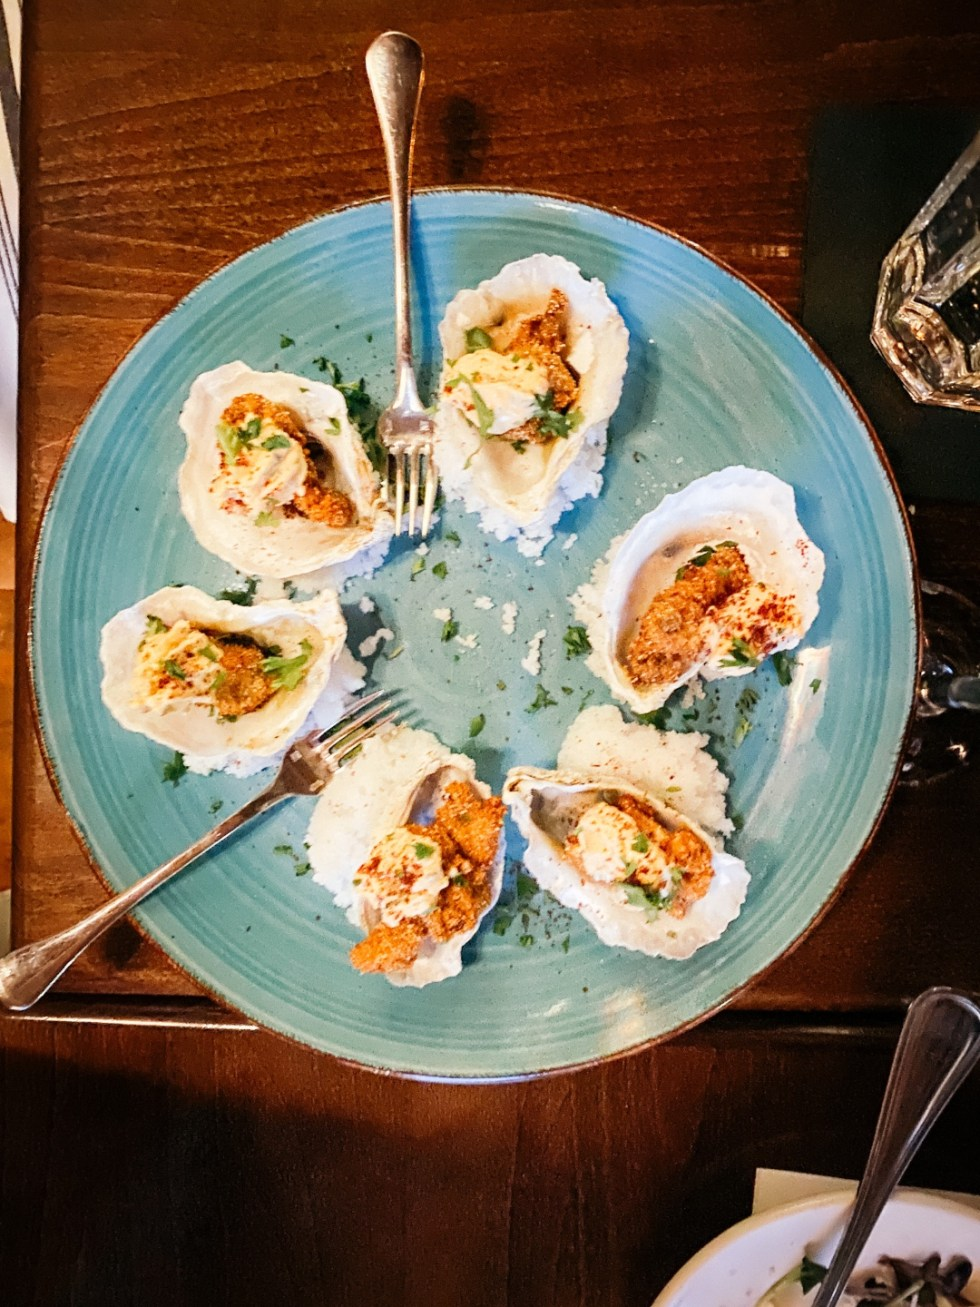 Raleigh Oyster Crawl: a Complete Guide to the Best Local Oyster Bars - I'm Fixin' To - @imfixintoblog | Raleigh Oyster Crawl by popular North Carolina blog, I'm Fixin' To: image of oysters on a blue plate.